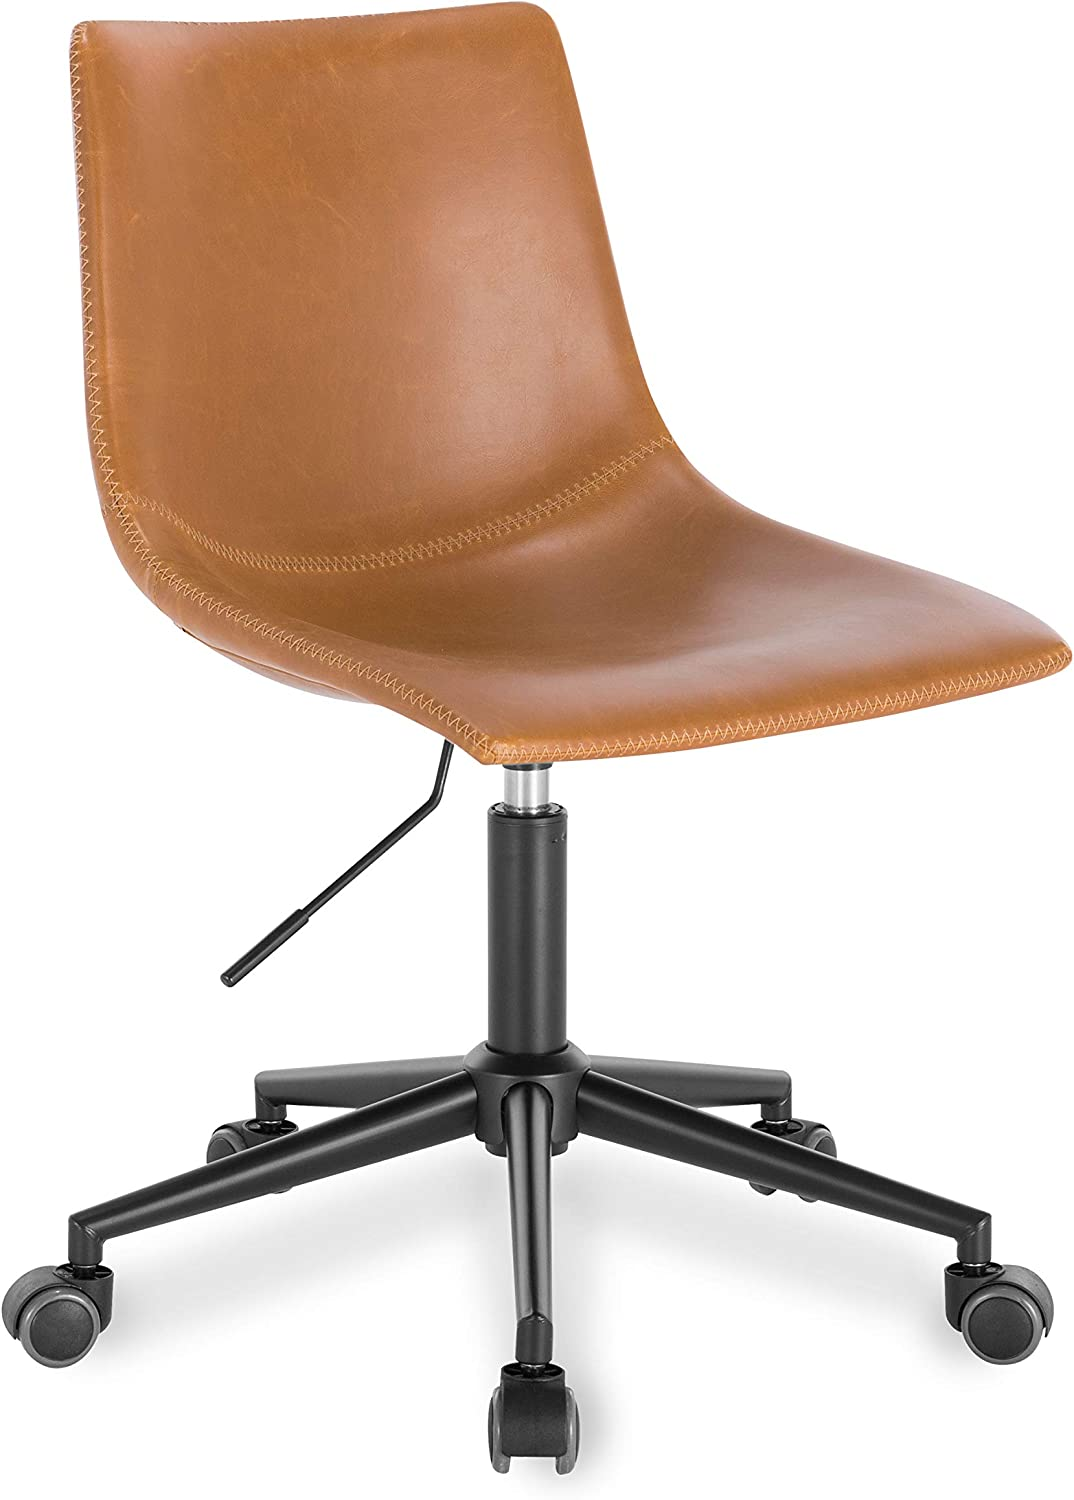 Poly and Bark Paxton Task Chair in Tan